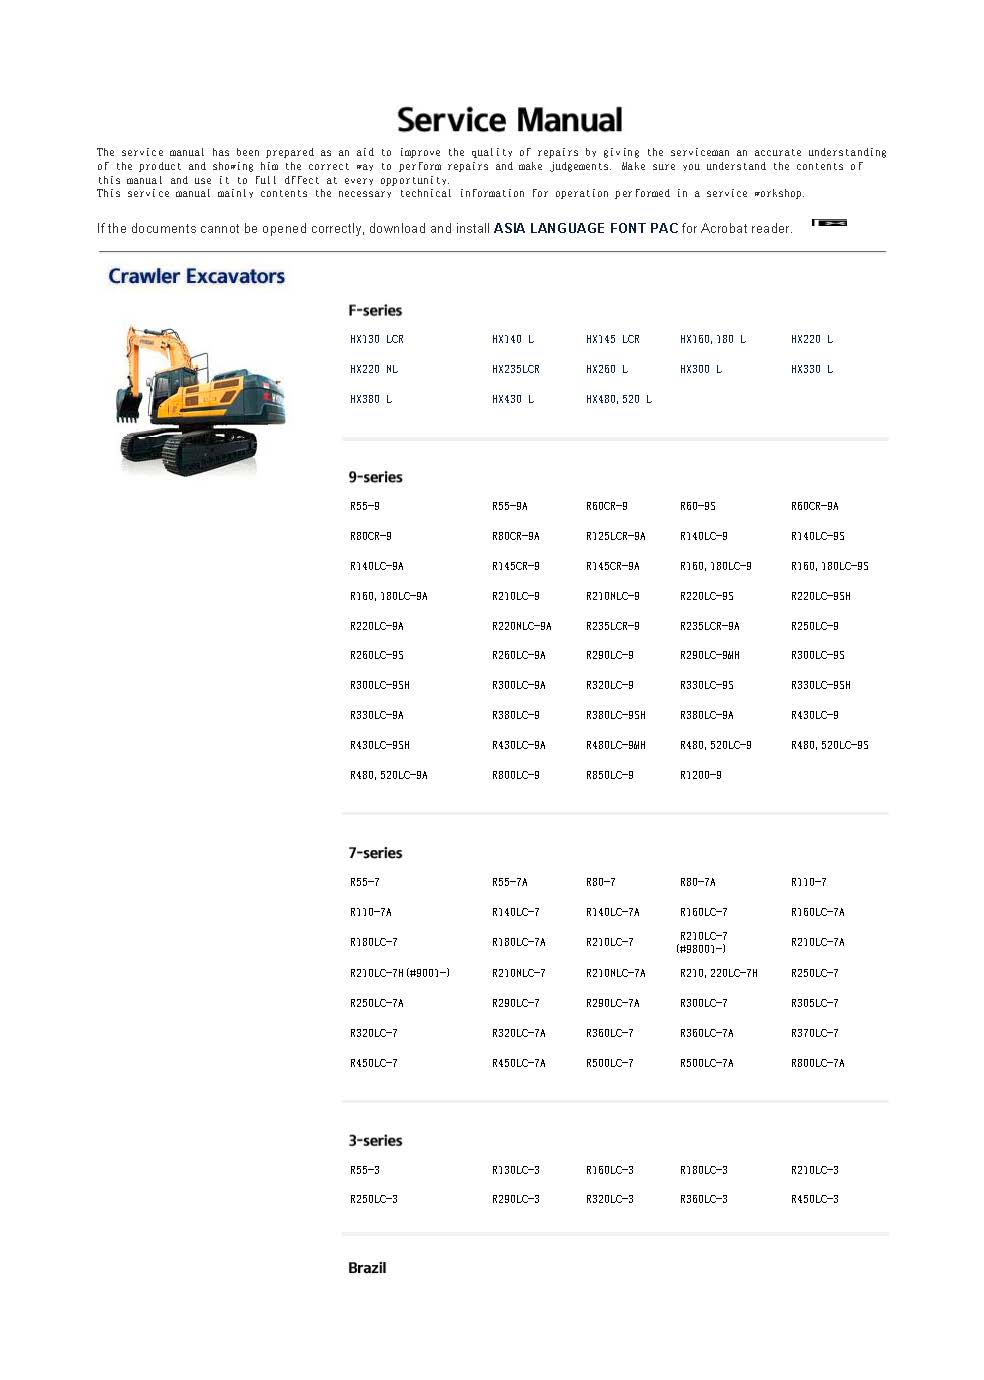 service wiring diagram for hyundai robex construction equipment engine service manuals service entrance panel wiring diagram hyundai robex construction equipment